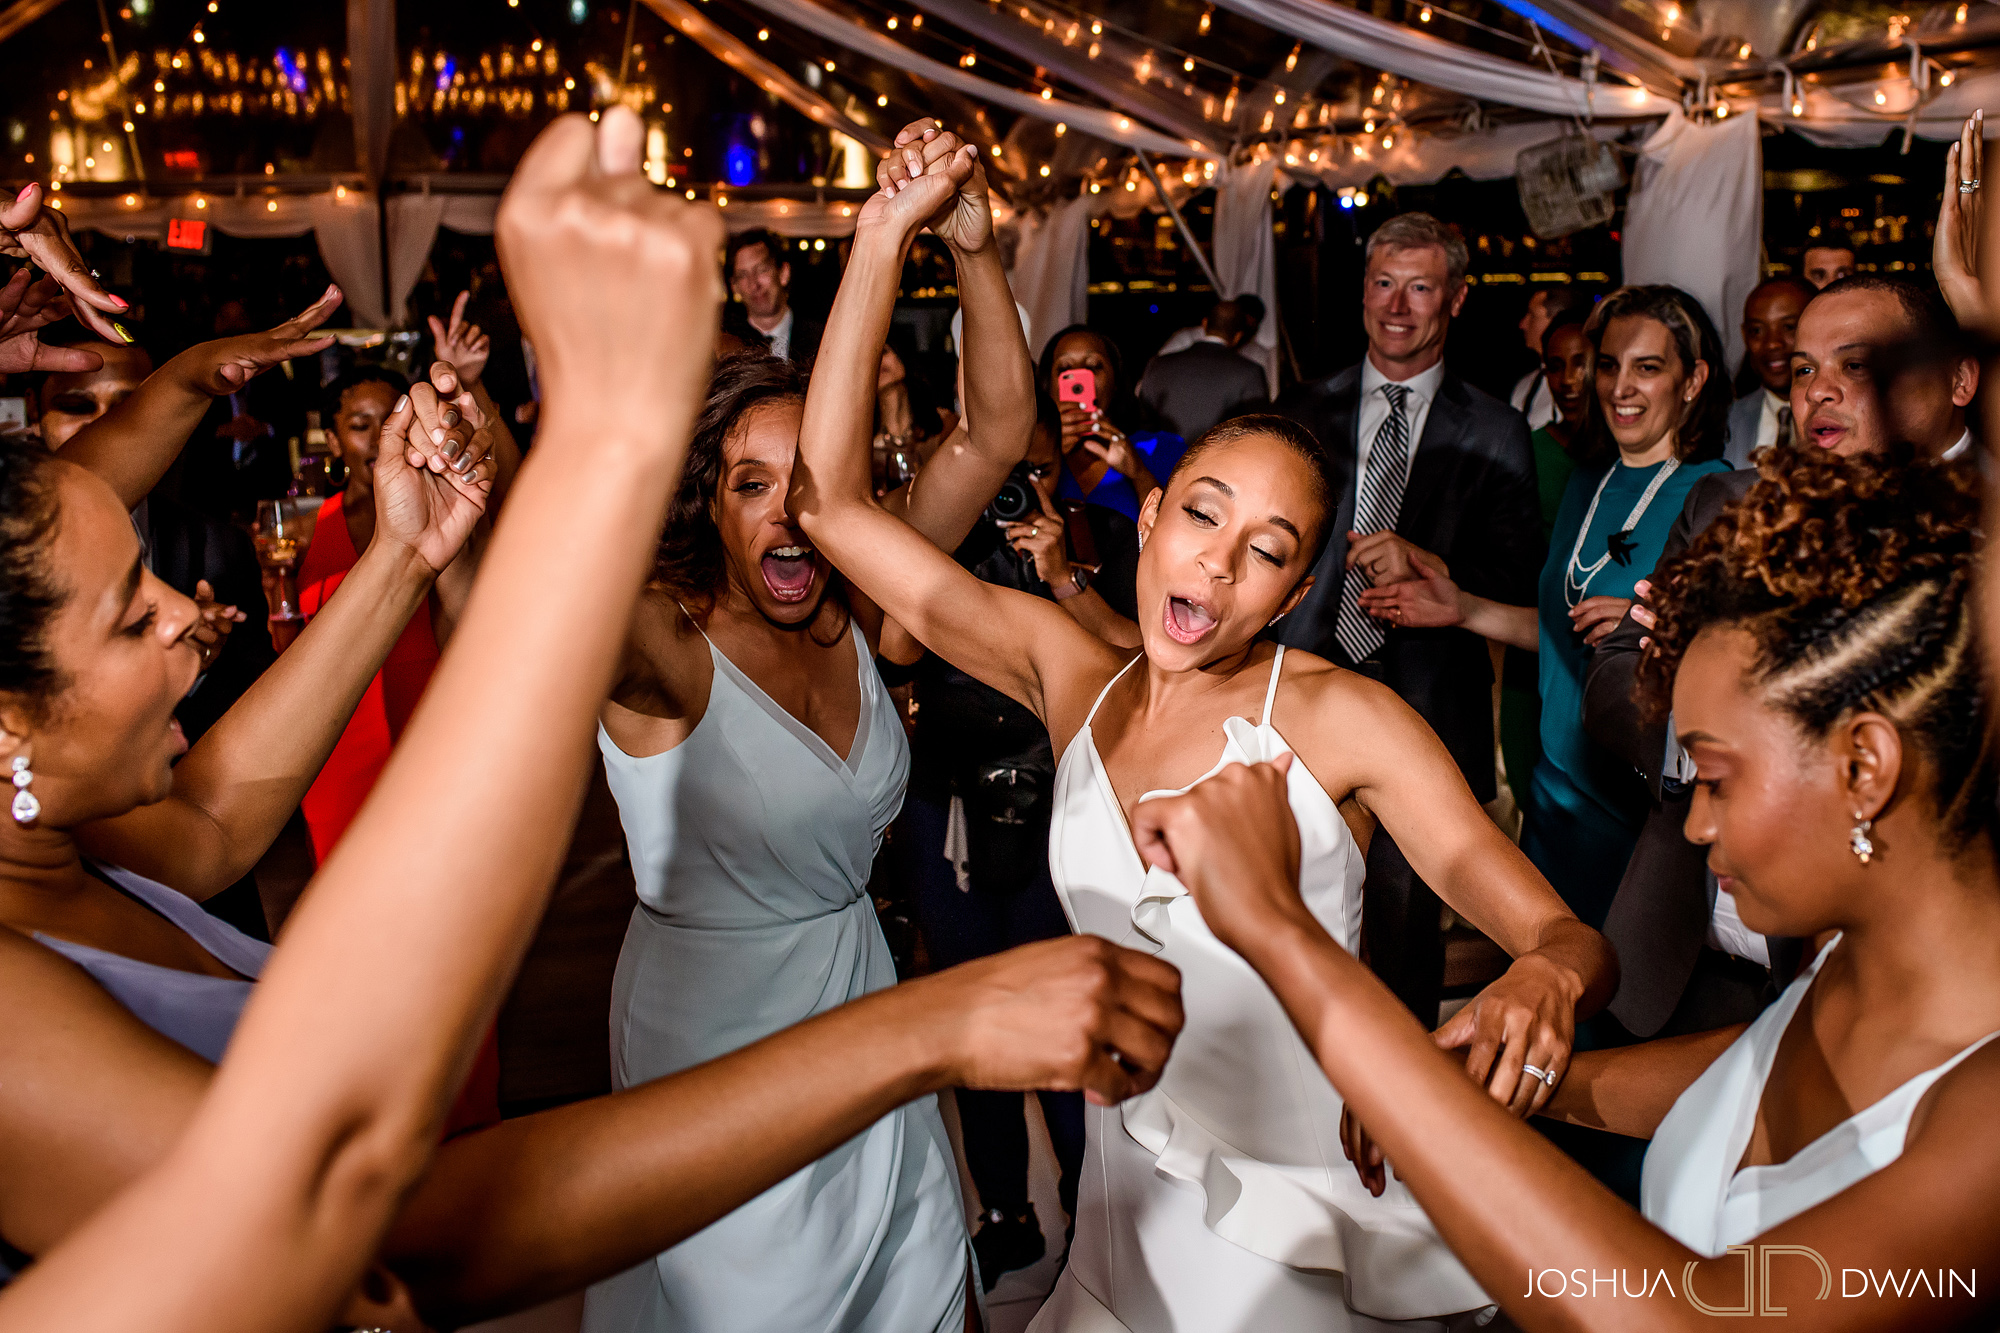 leshia-adam-035-dc-wharf-wedding-photos-joshua-dwain-photographer